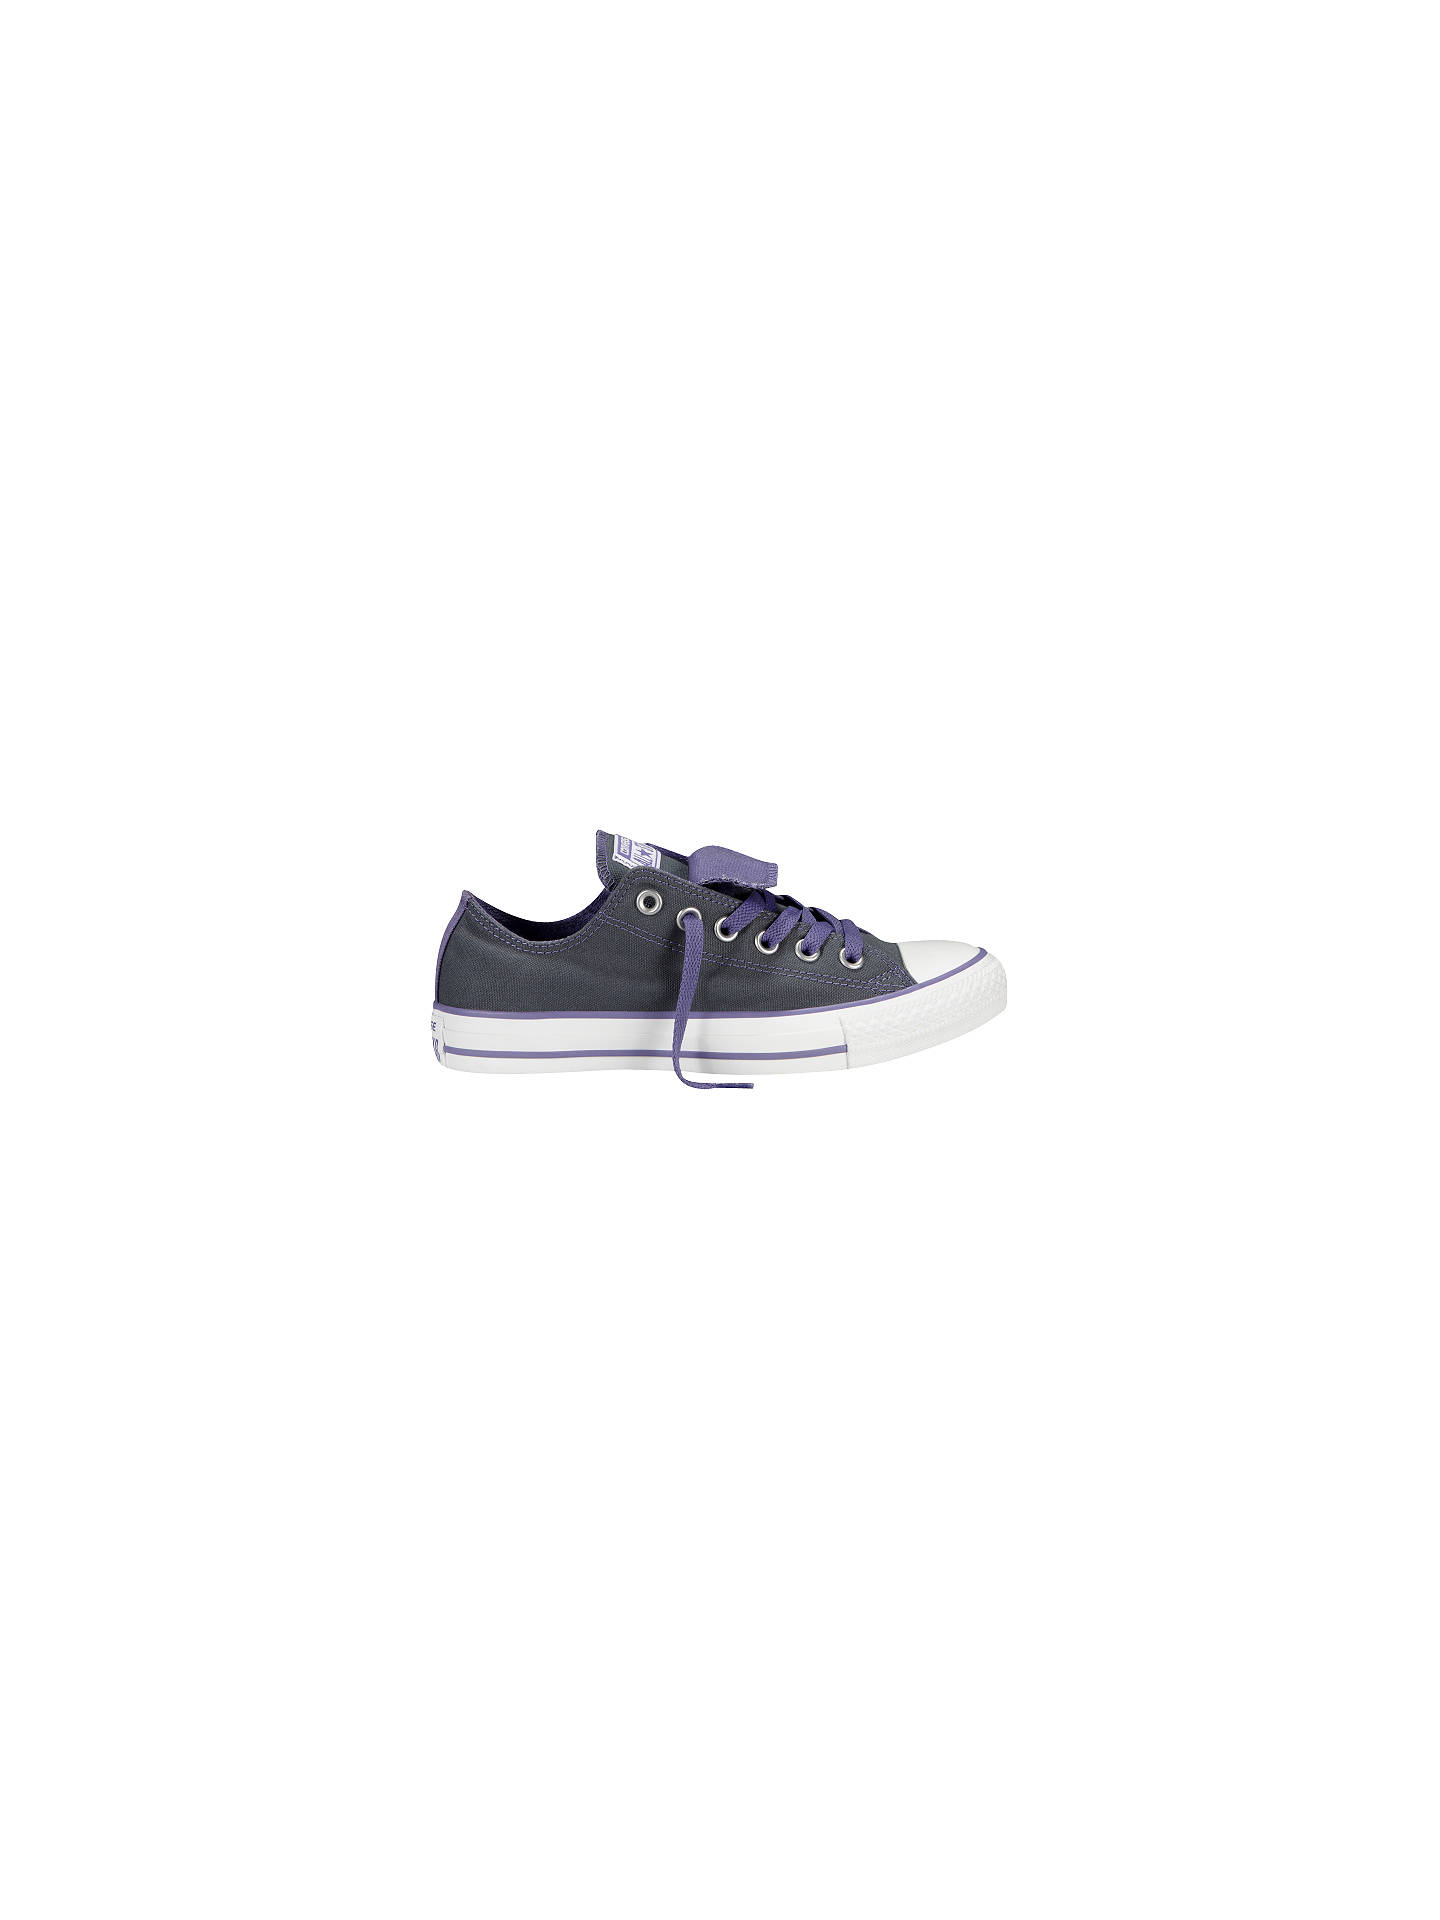 9fbbf79f360b Converse Chuck Taylor All Star Ox Double Tongue Trainers at John ...